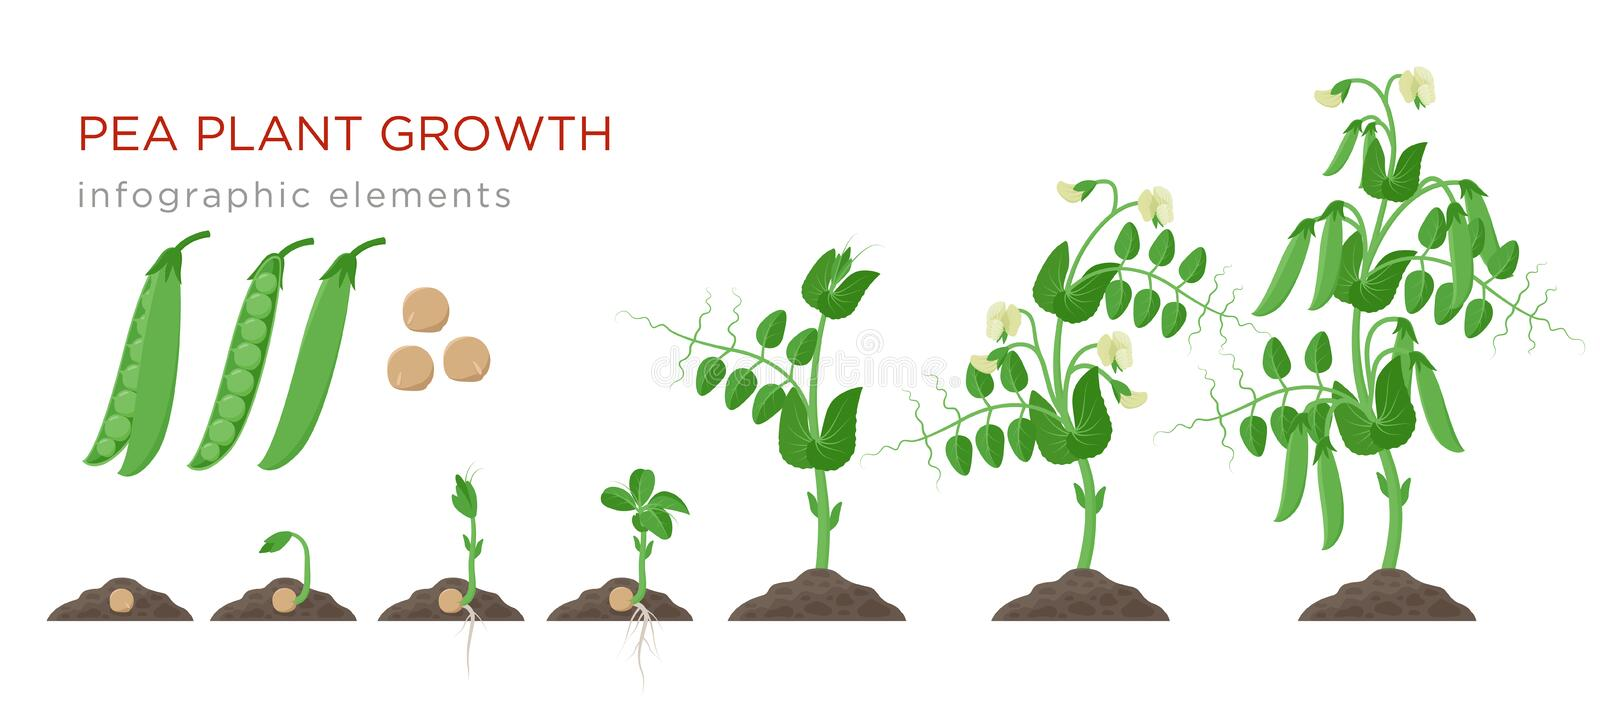 Pea plant growth stages infographic elements in flat design. Planting process of peas from seeds sprout to ripe. Vegetable, plant life cycle isolated on white royalty free illustration